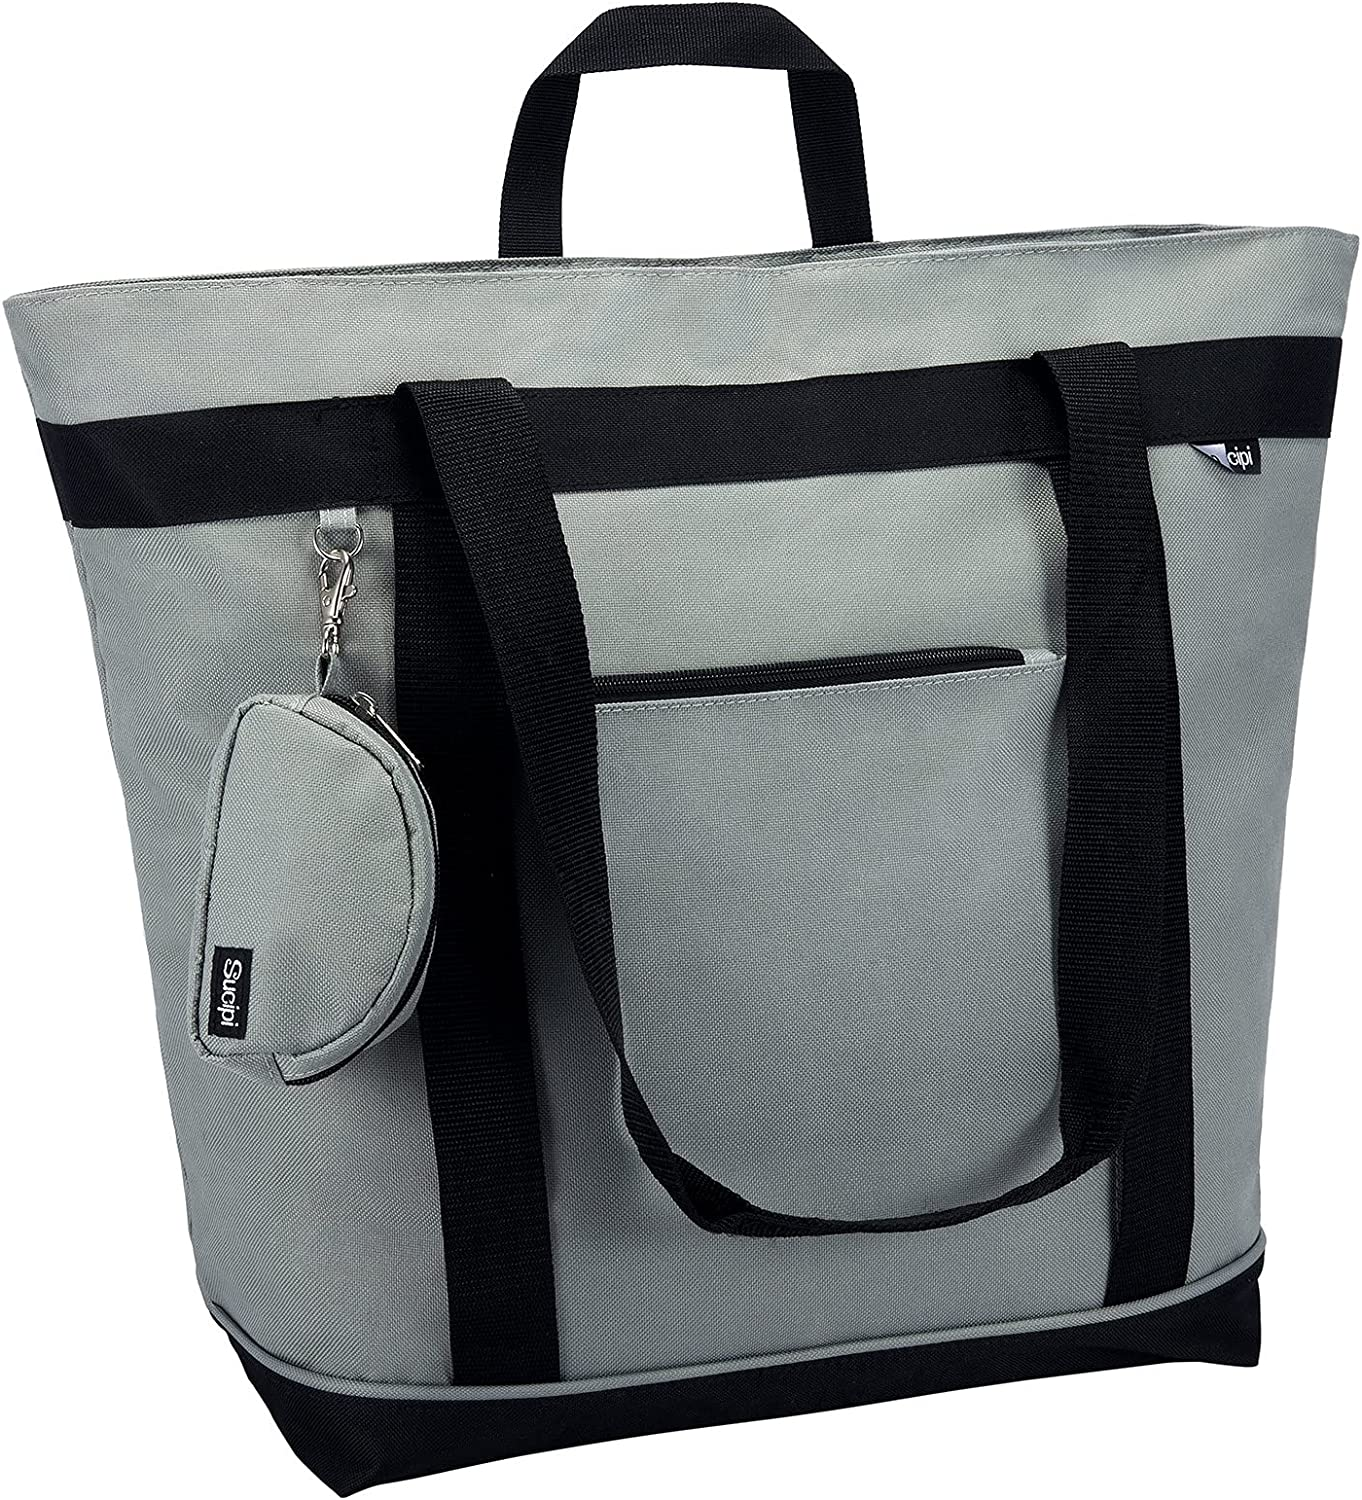 Sucipi Insulated Cooler Bag Reusable Grocery Bag Insulated Shopping Bags for Groceries Ultimate Grocery Shopping Bag